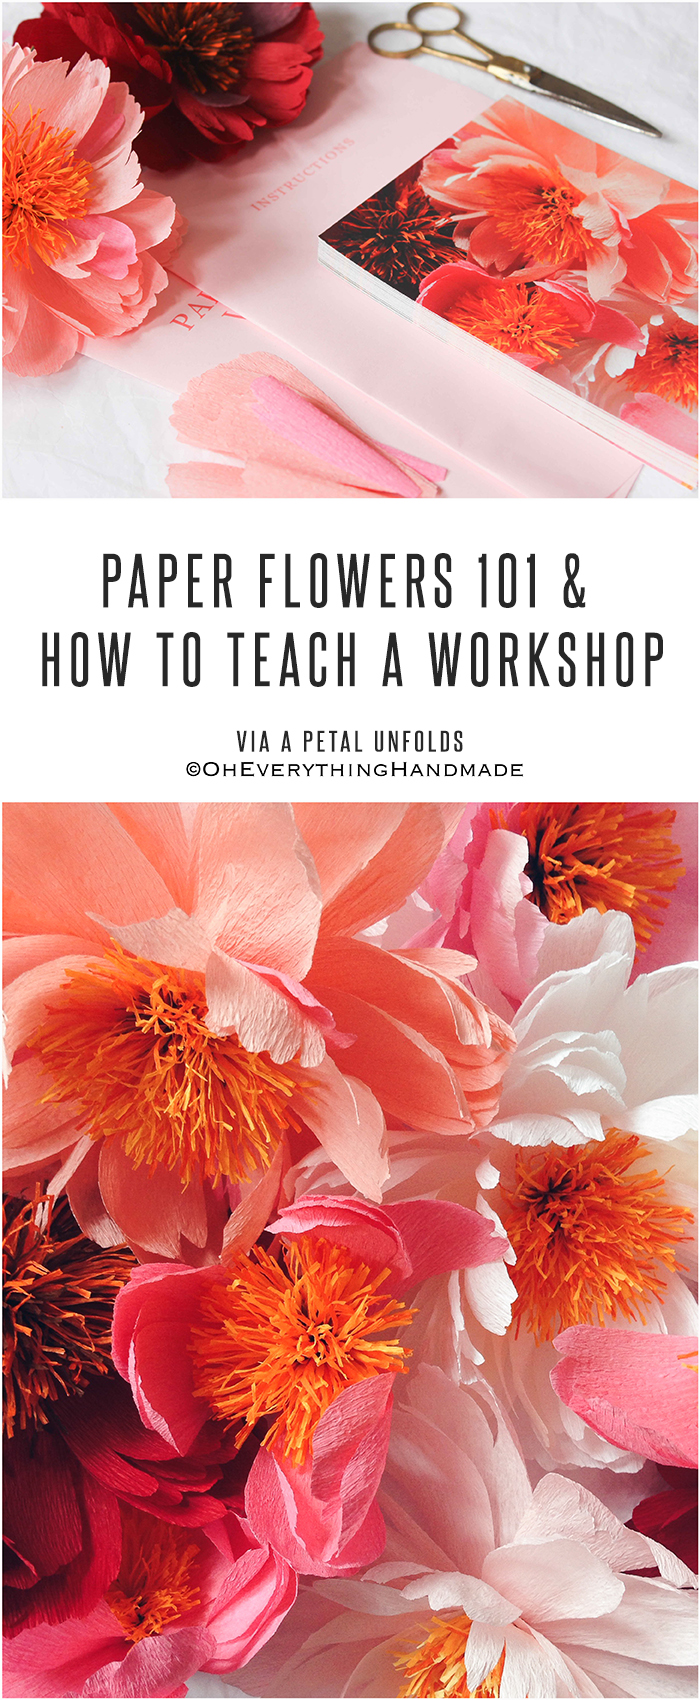 Paper Flowers 101 How To Teach A Workshop Oheverythinghandmade